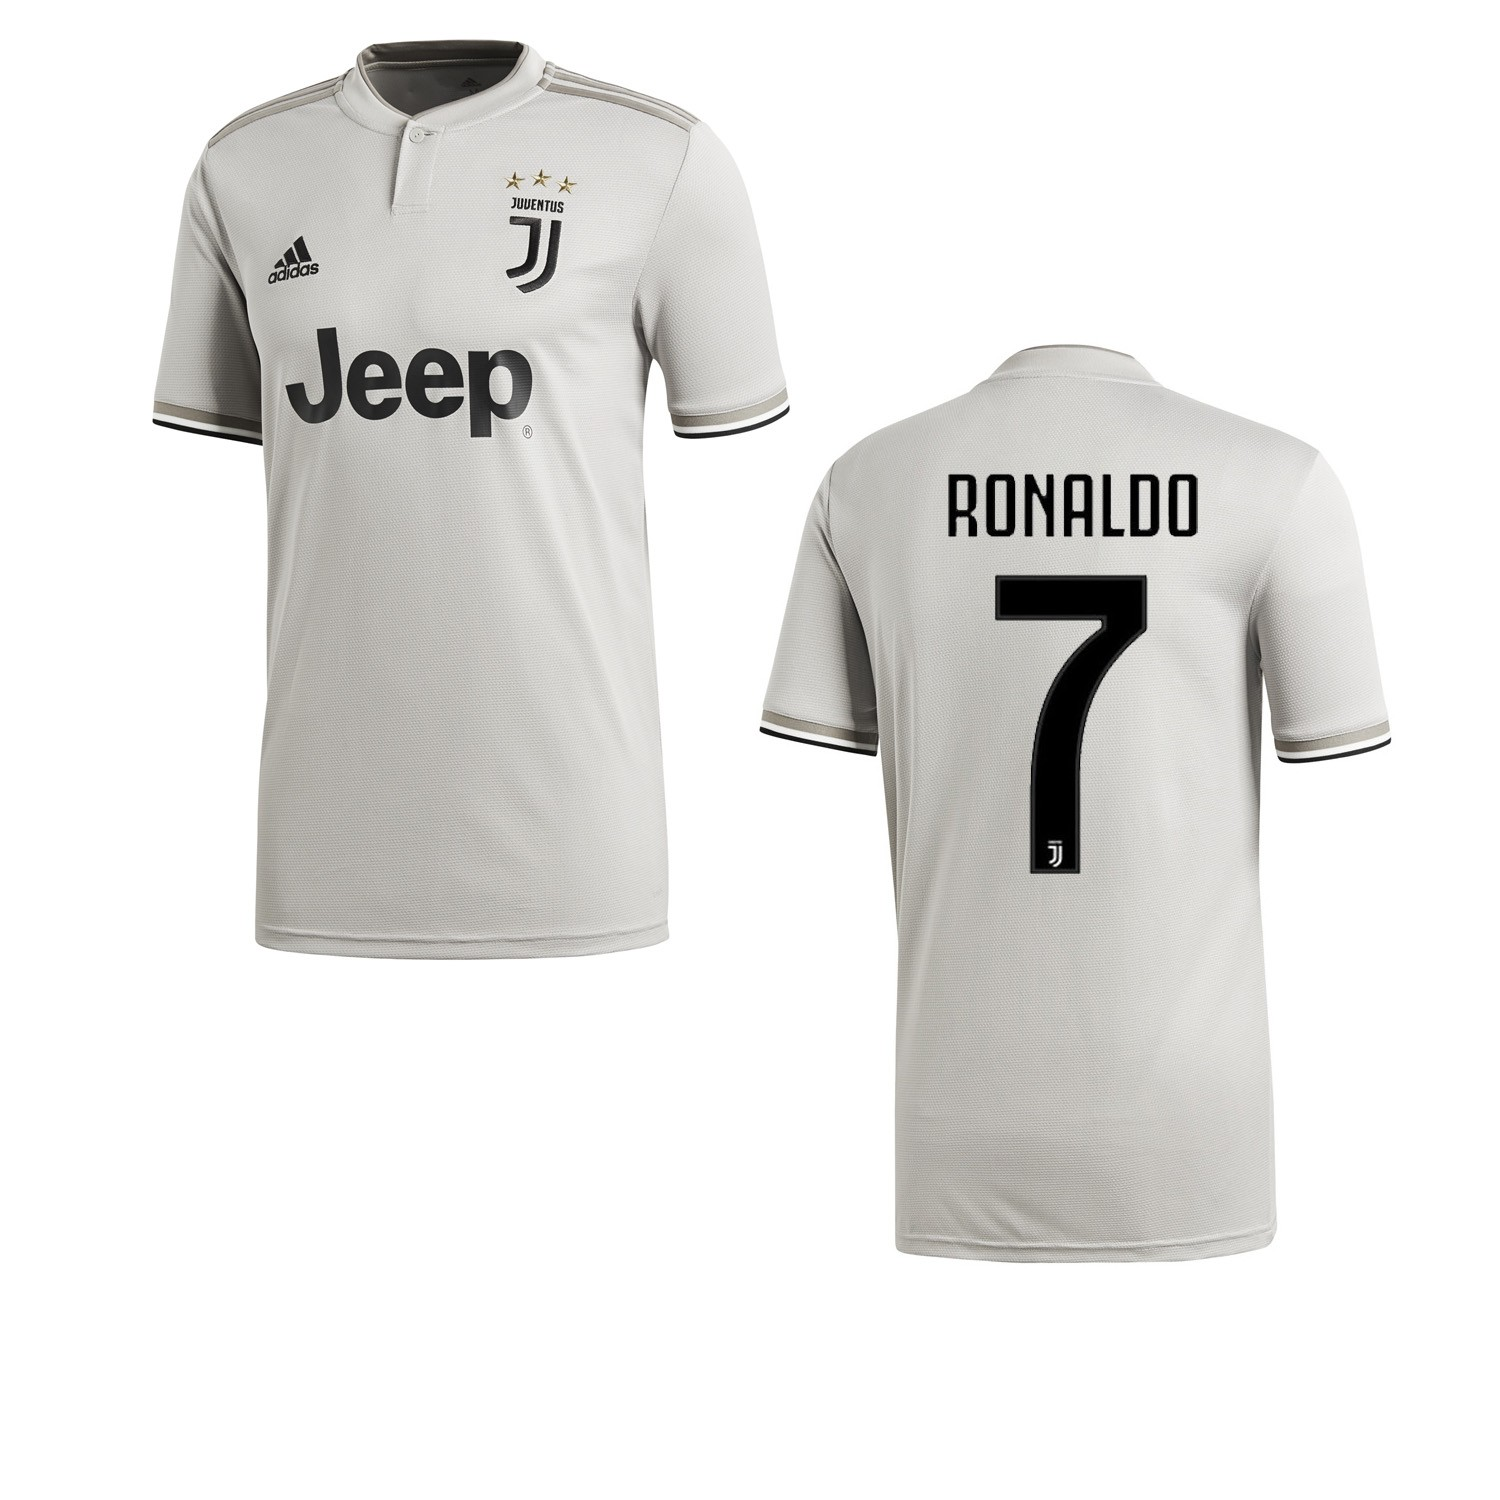 sports shoes d6eab e1a5e Juventus 7 Ronaldo away shirt 2018/19 Adidas